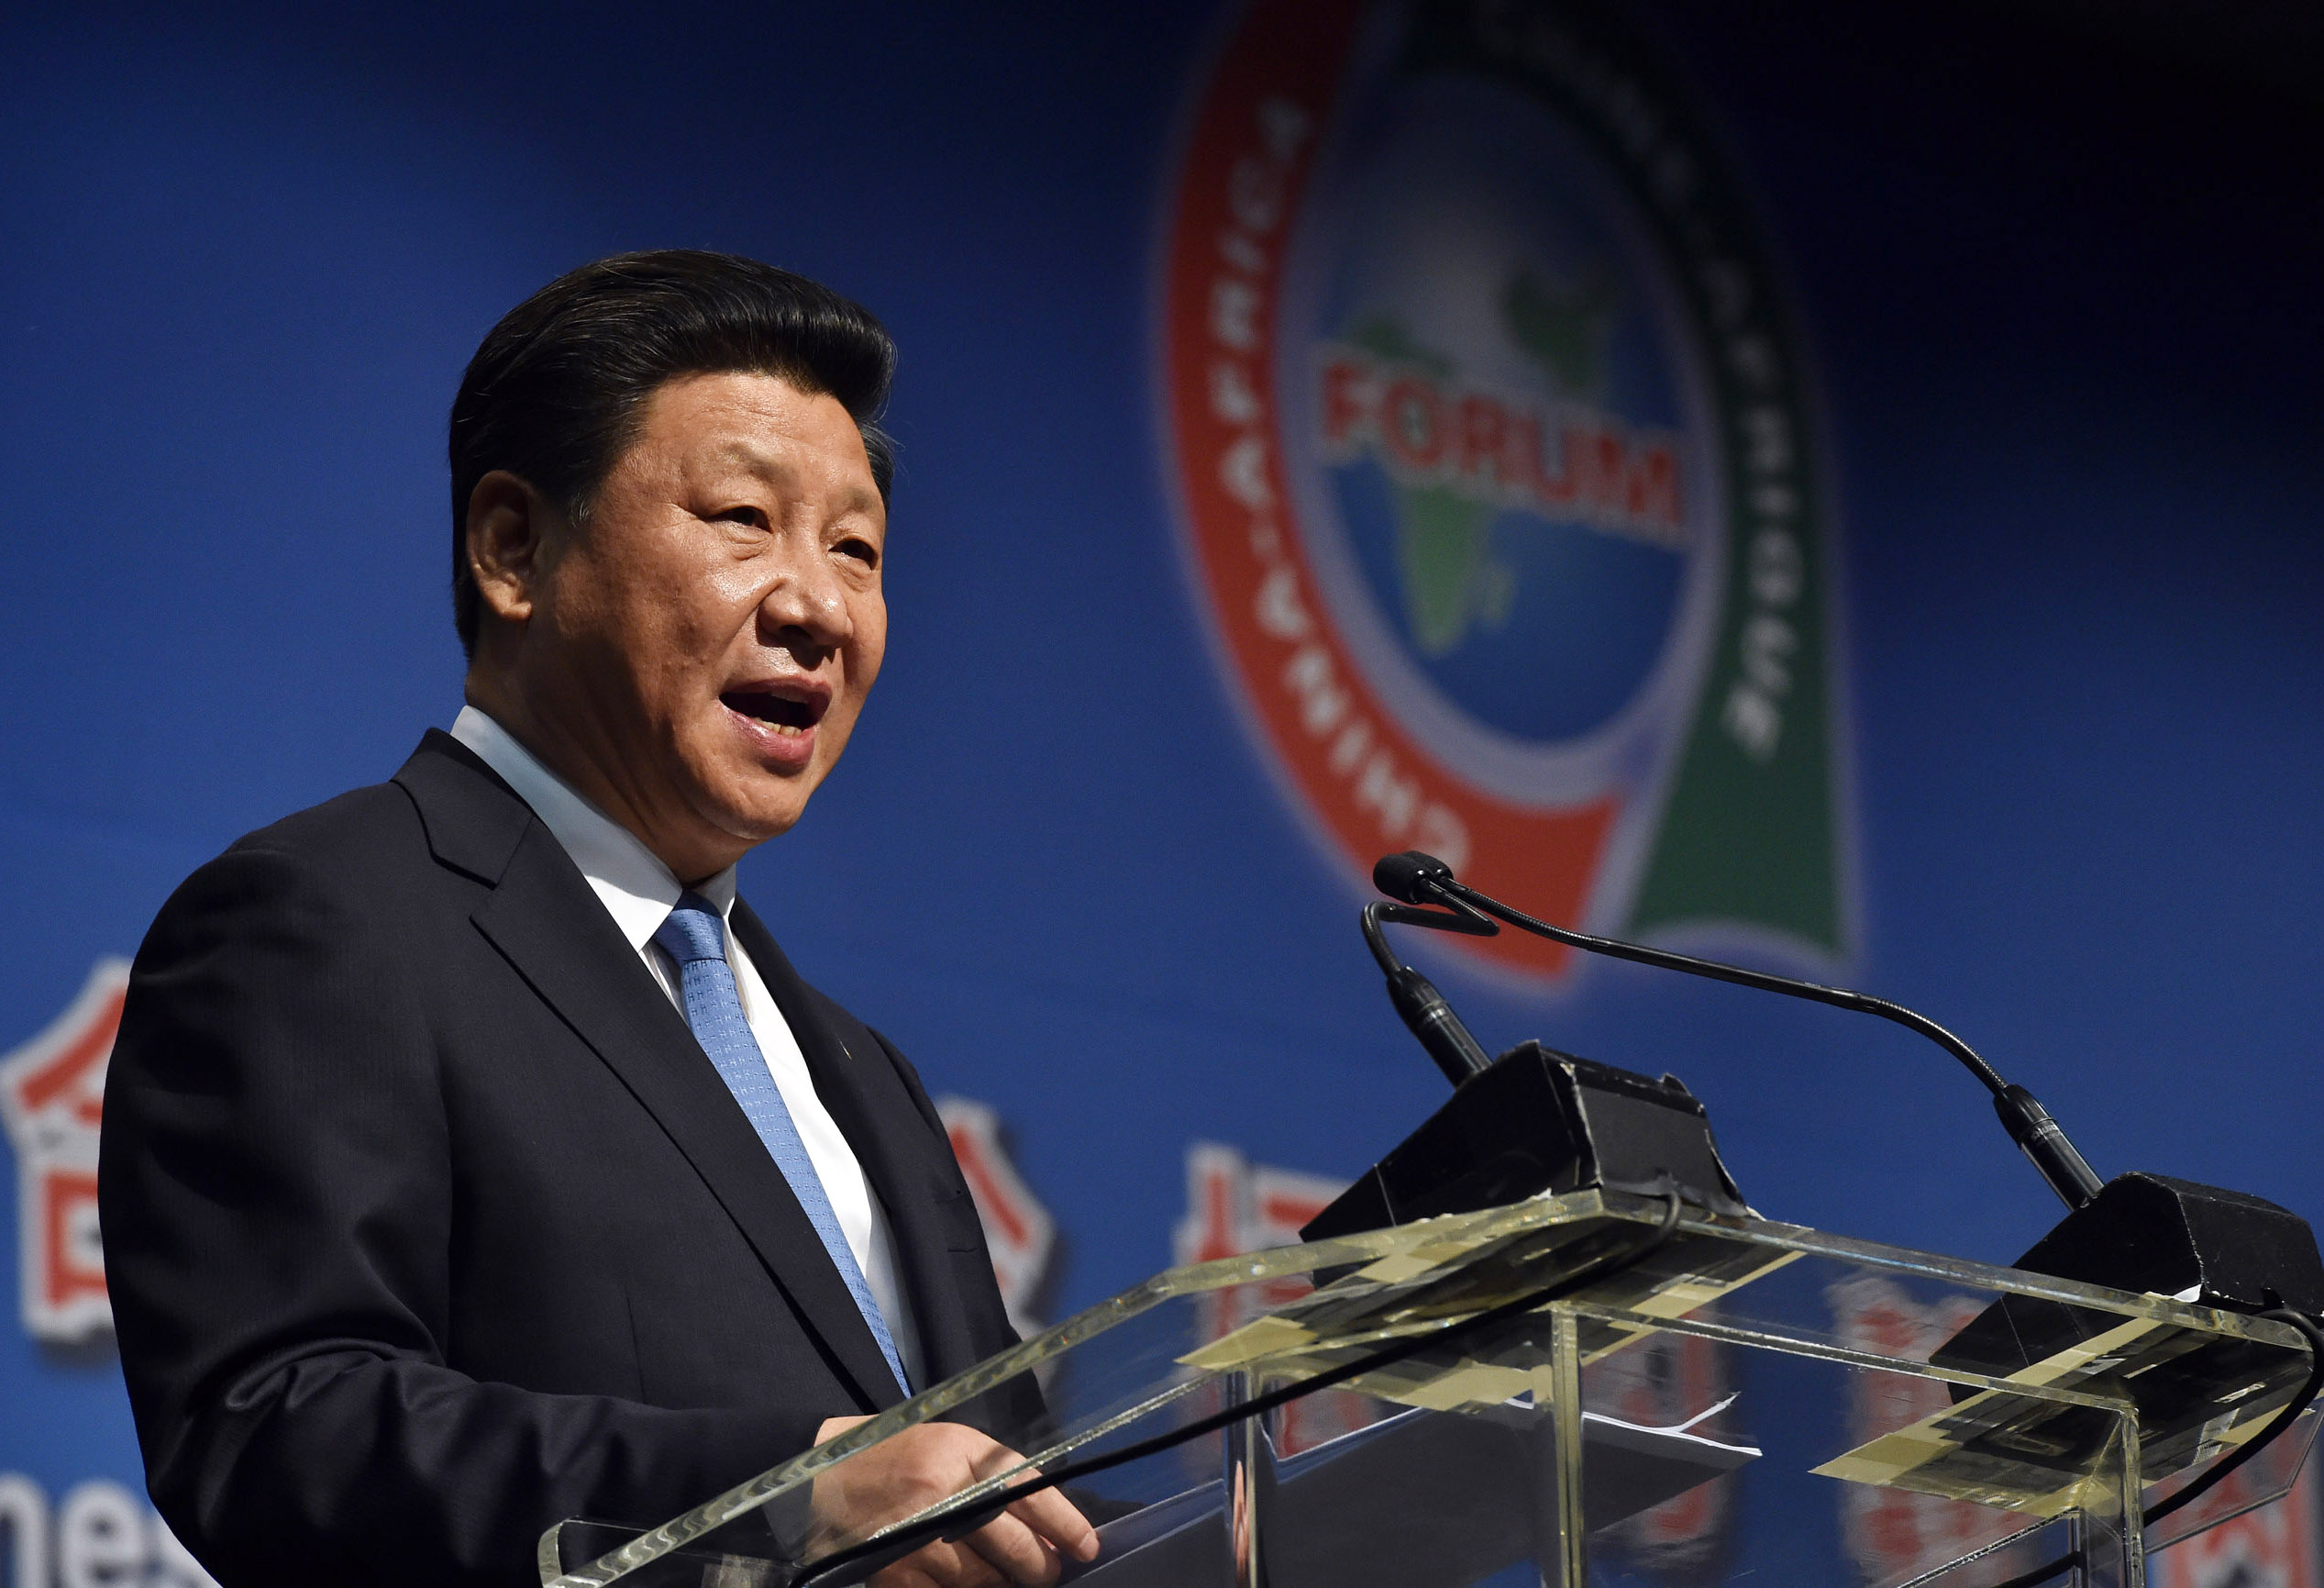 A handout picture provided by the South African Government Communication and Information System (GCIS) shows Chinese President Xi Jinping addressing delegates at the opening of the Forum on China-Africa Co-operation (Focac) Summit in Johannesburg, South Africa, Dec. 2015.